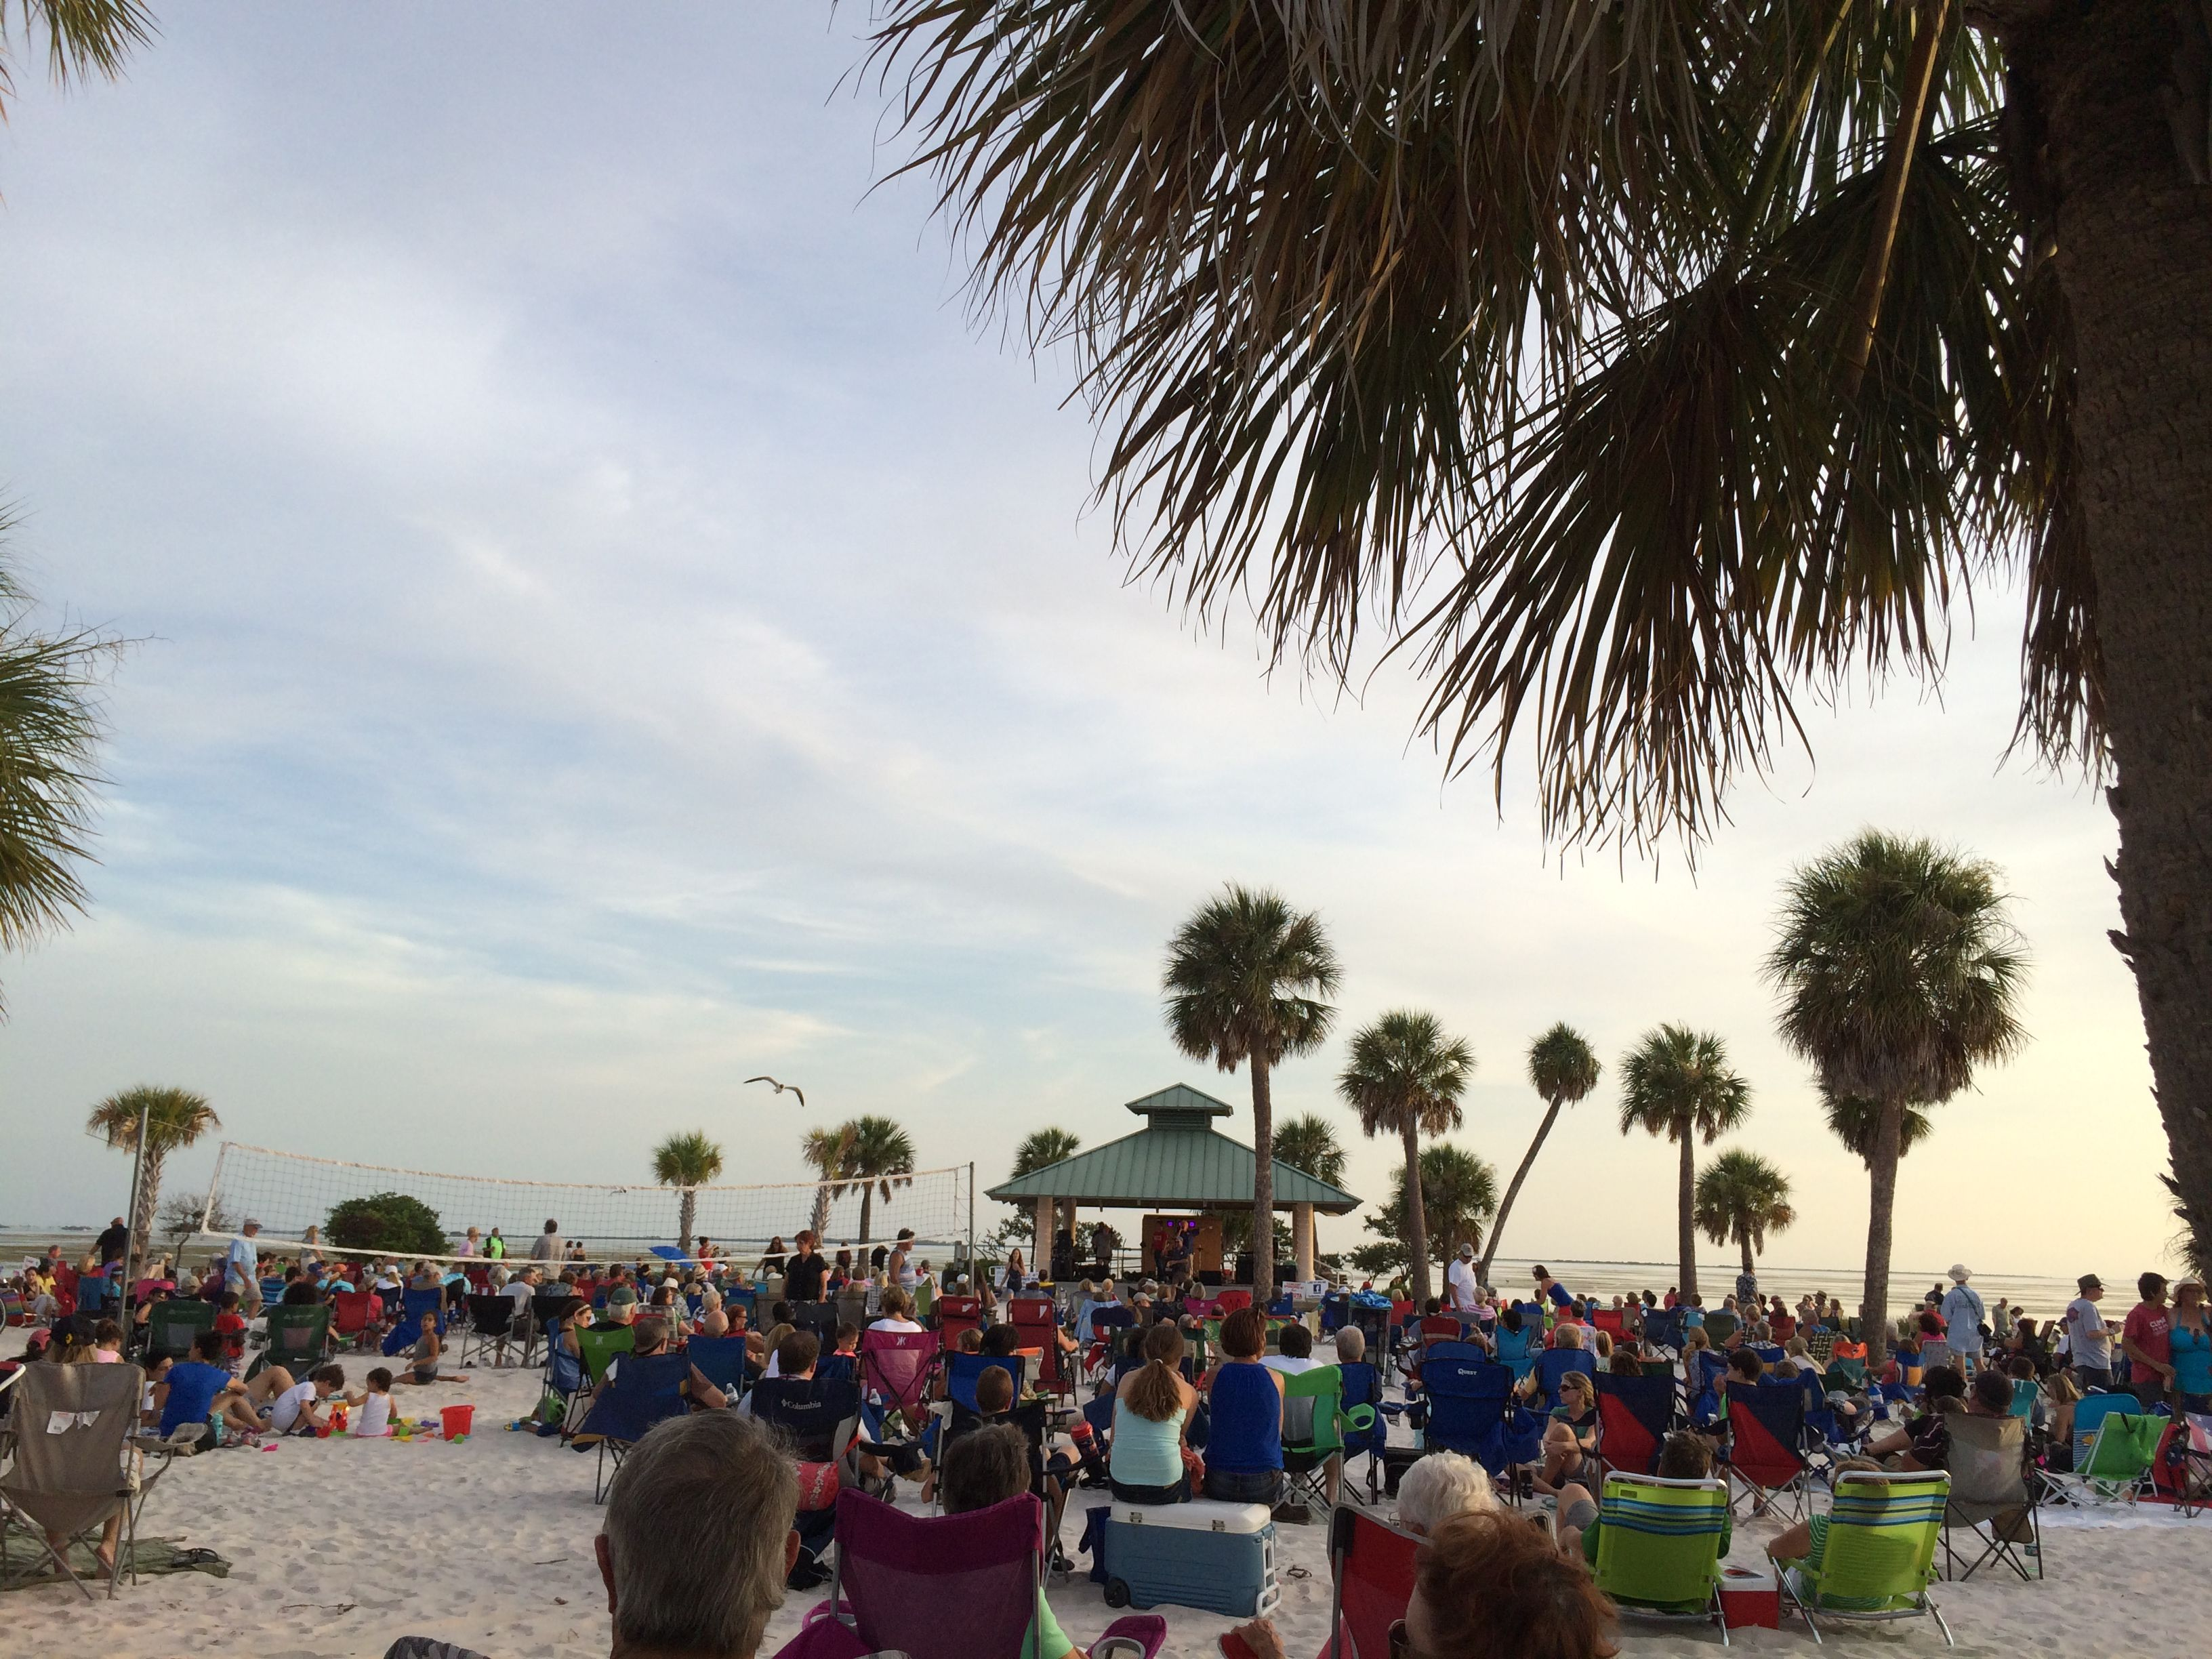 Sunset Beach Concert Series Tarpon Springs Fl Events Can Be Enjoyed By All At